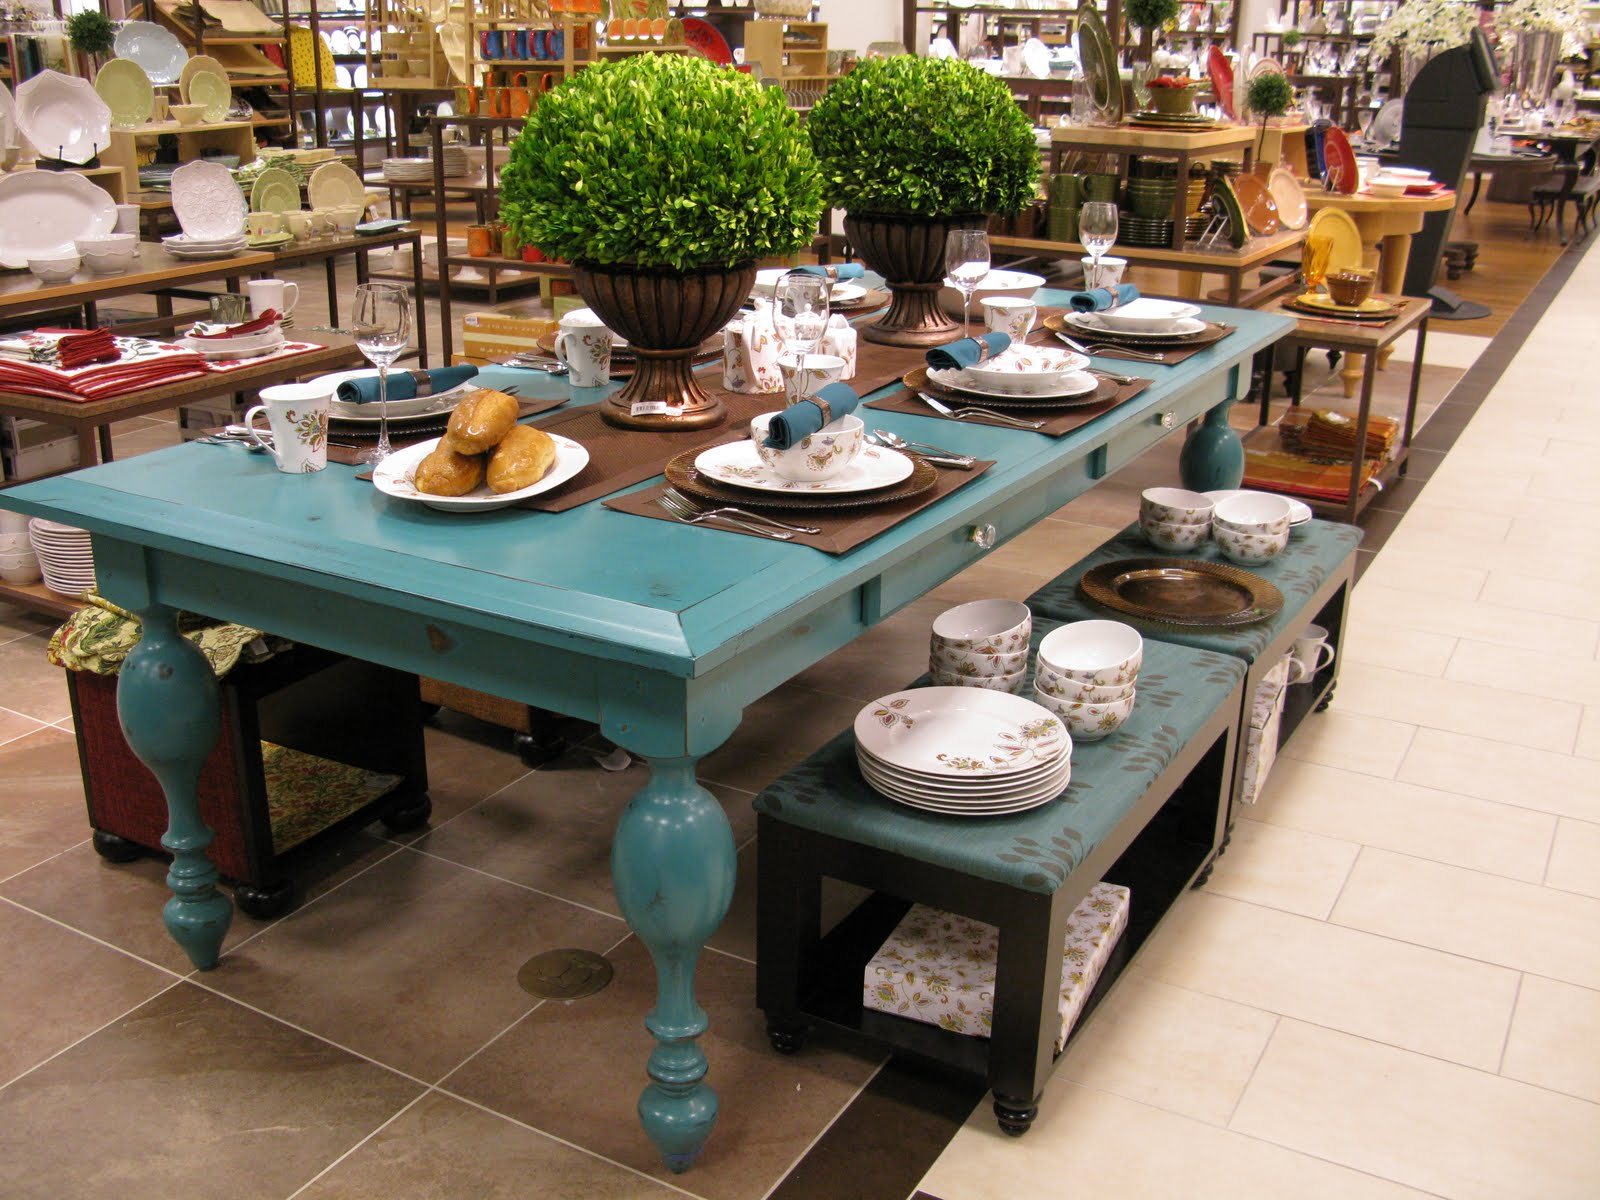 The Turquoise Dining Table